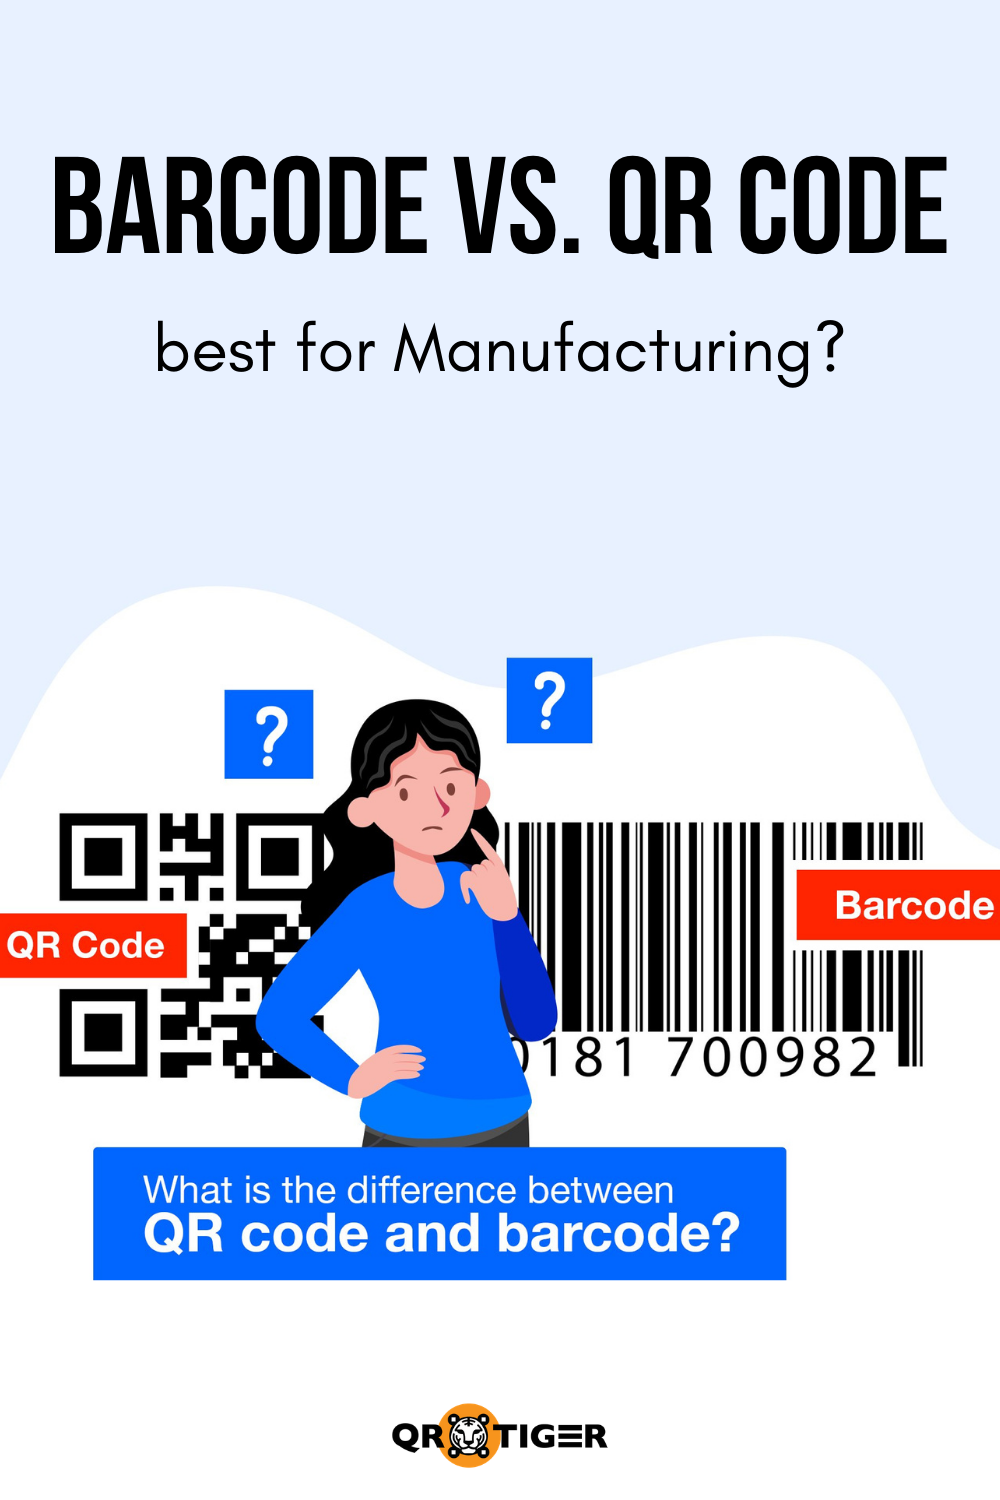 Qrcode Vs Barcode What S The Difference Between Qr Code And Barcode Manufacturing Tools Tech Qr Code Barcode Manufacturing